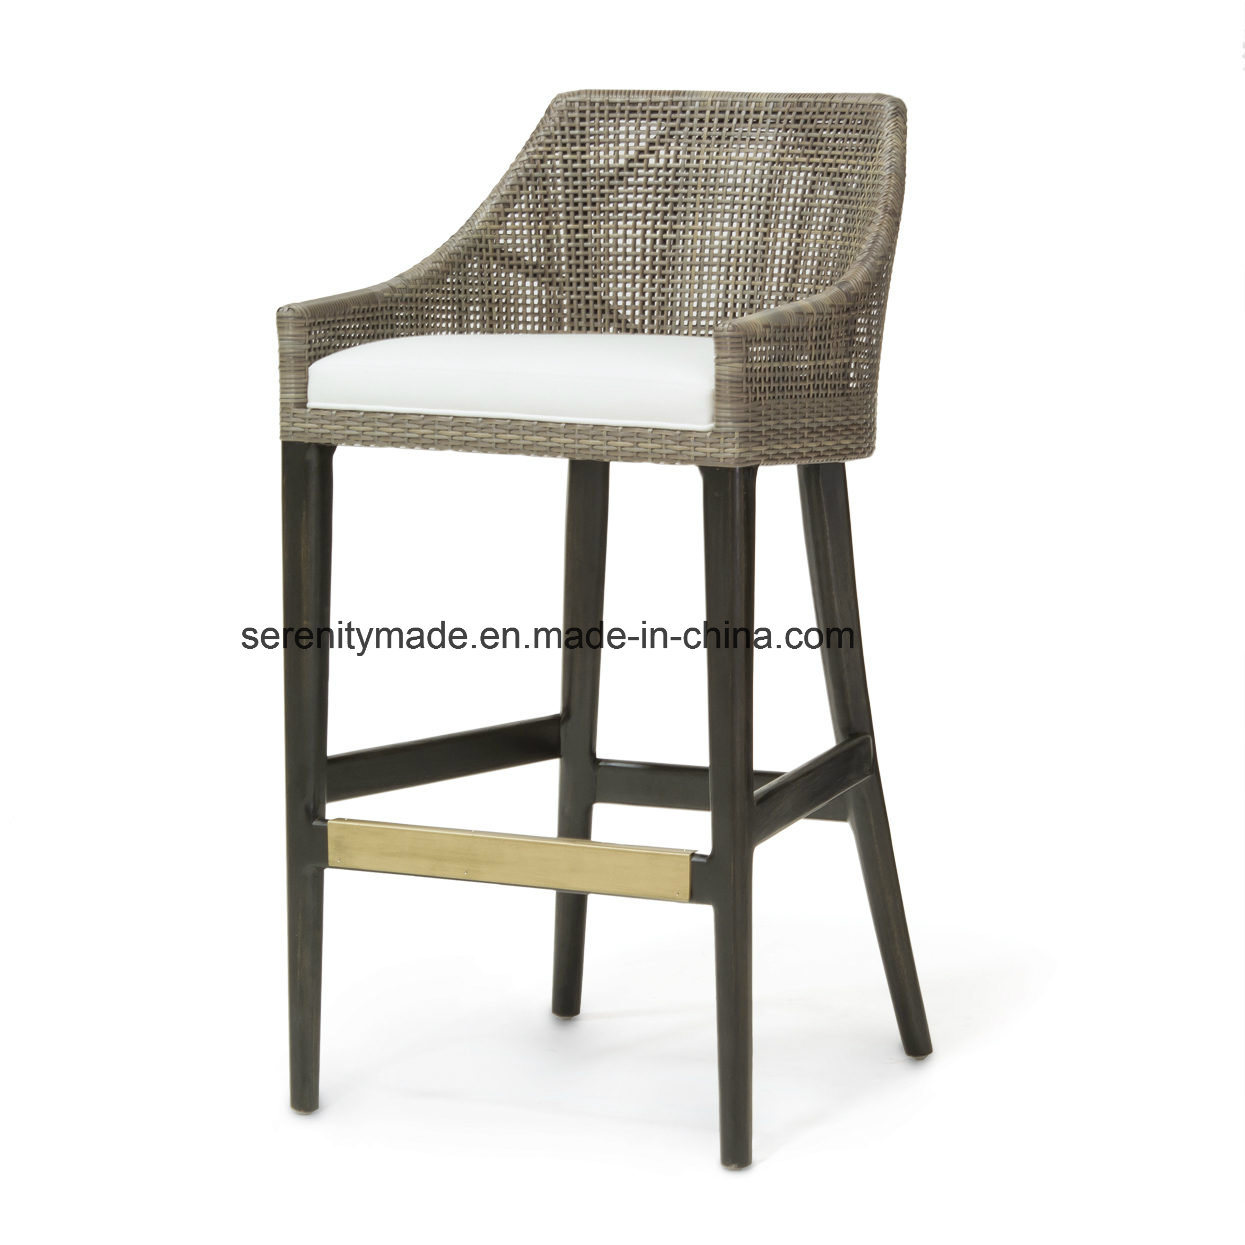 Fabulous Hot Item Outdoor Restaurant Furniture Rattan Aluminum Garden Bar Stool Chair Andrewgaddart Wooden Chair Designs For Living Room Andrewgaddartcom